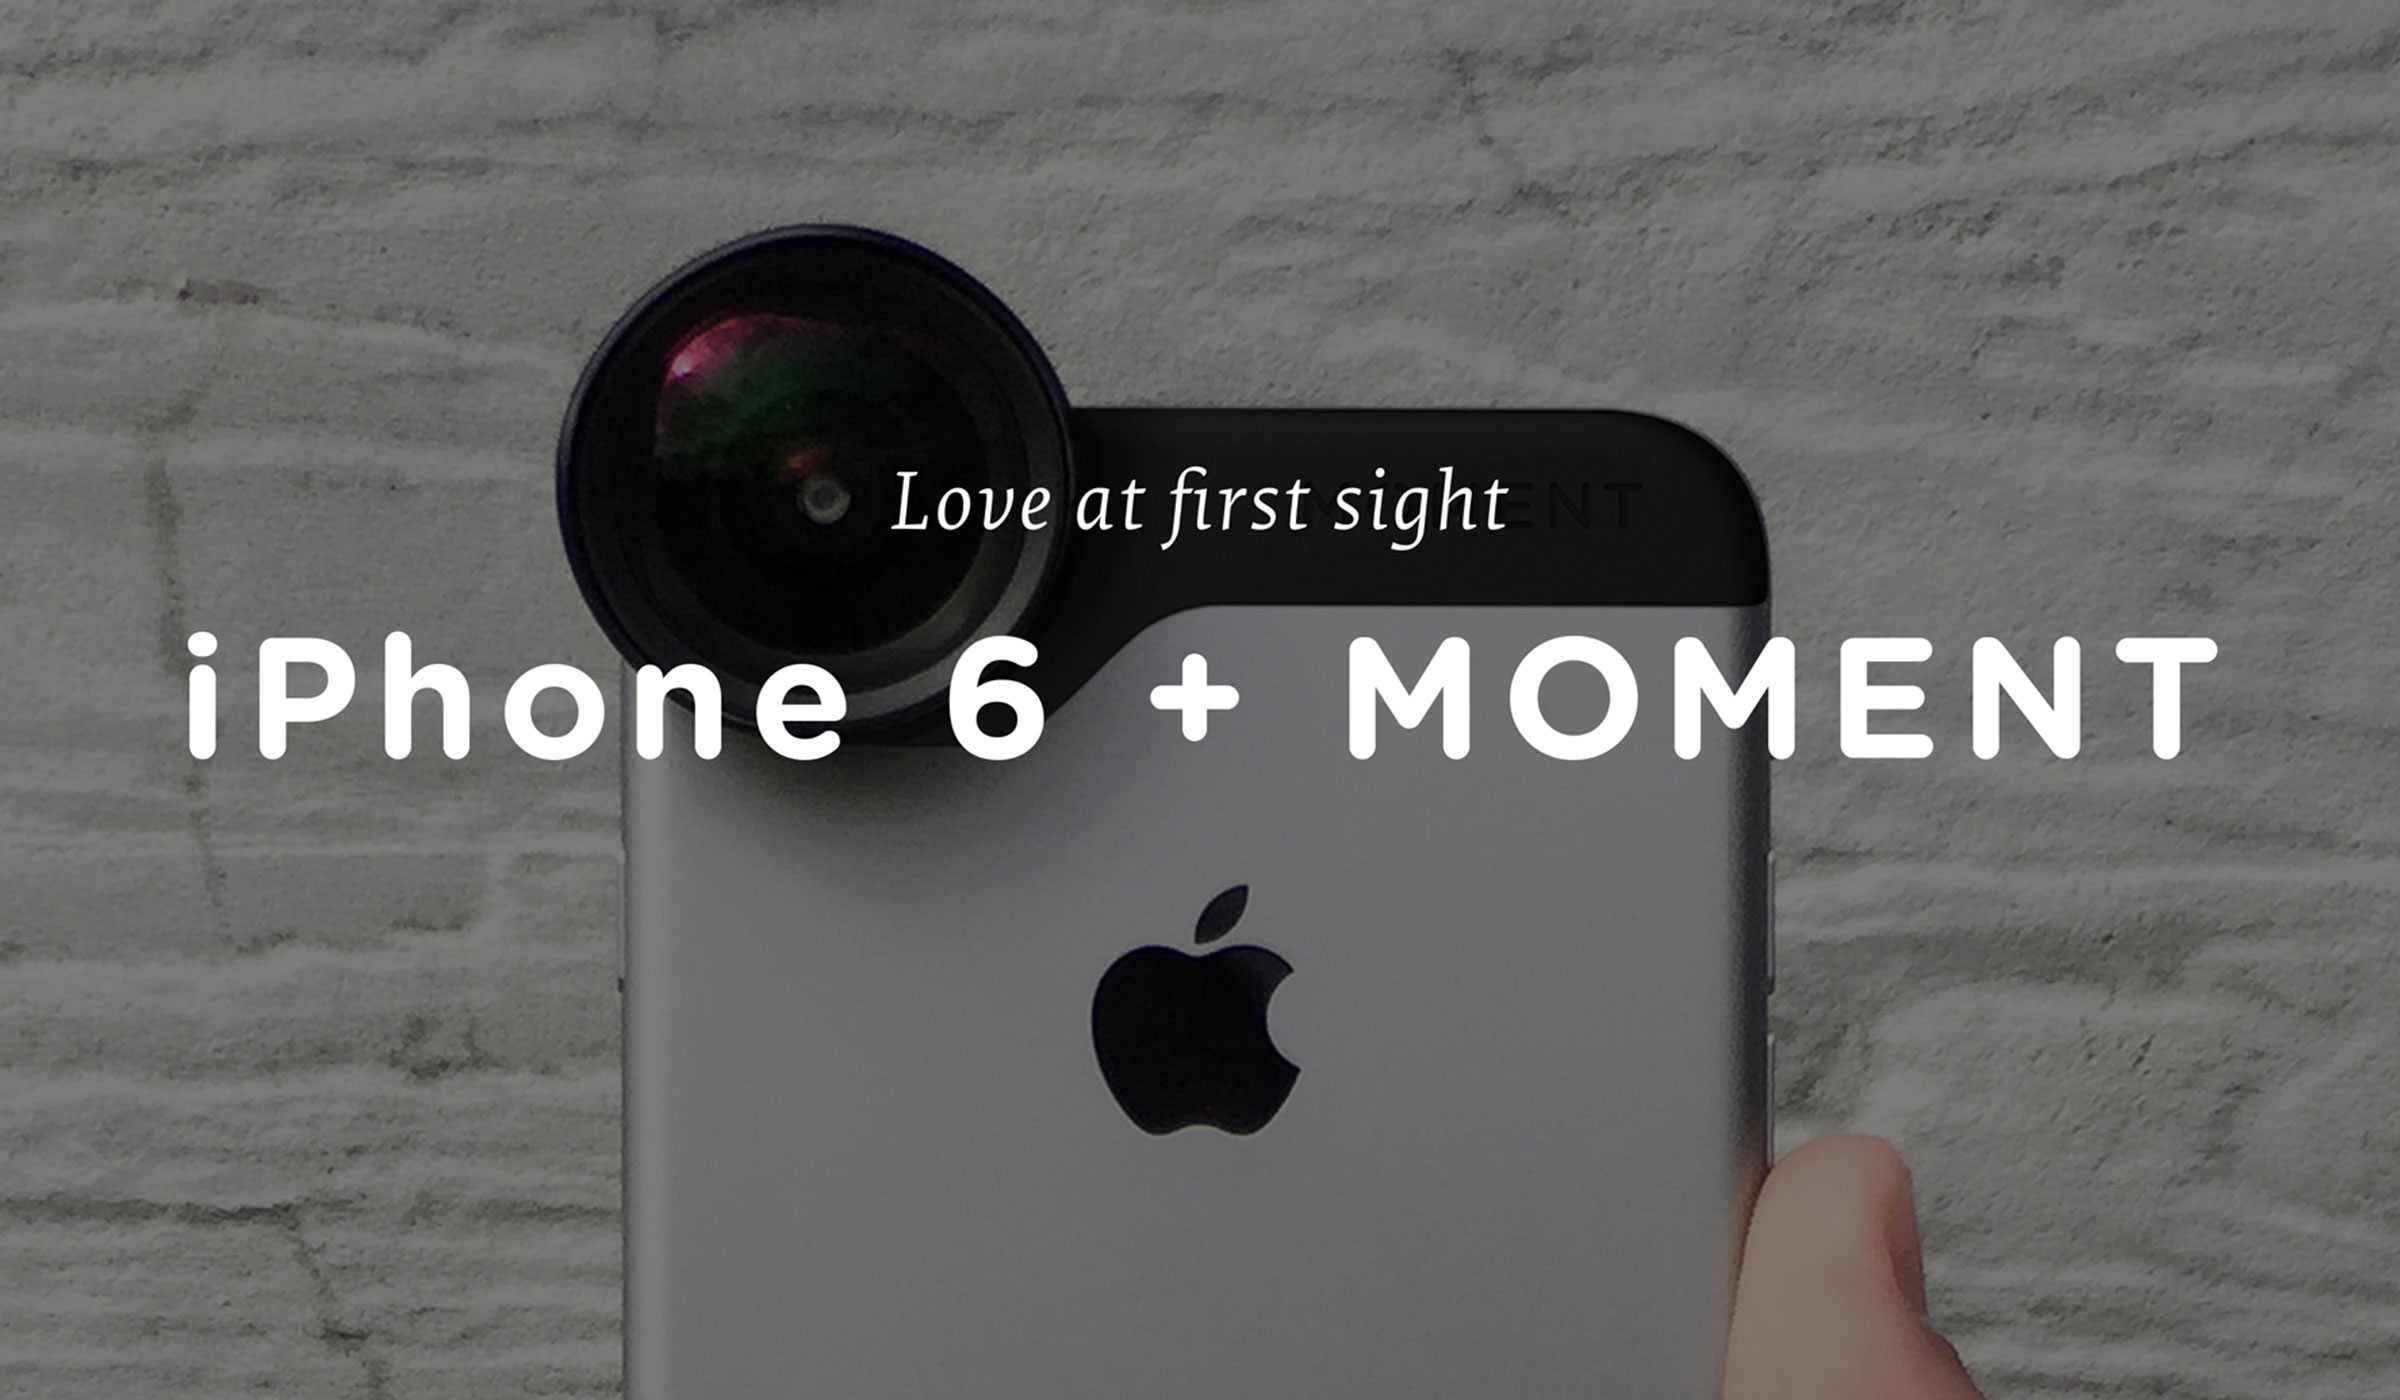 MOMENT IPHONE 6 LENS ADD-ONS